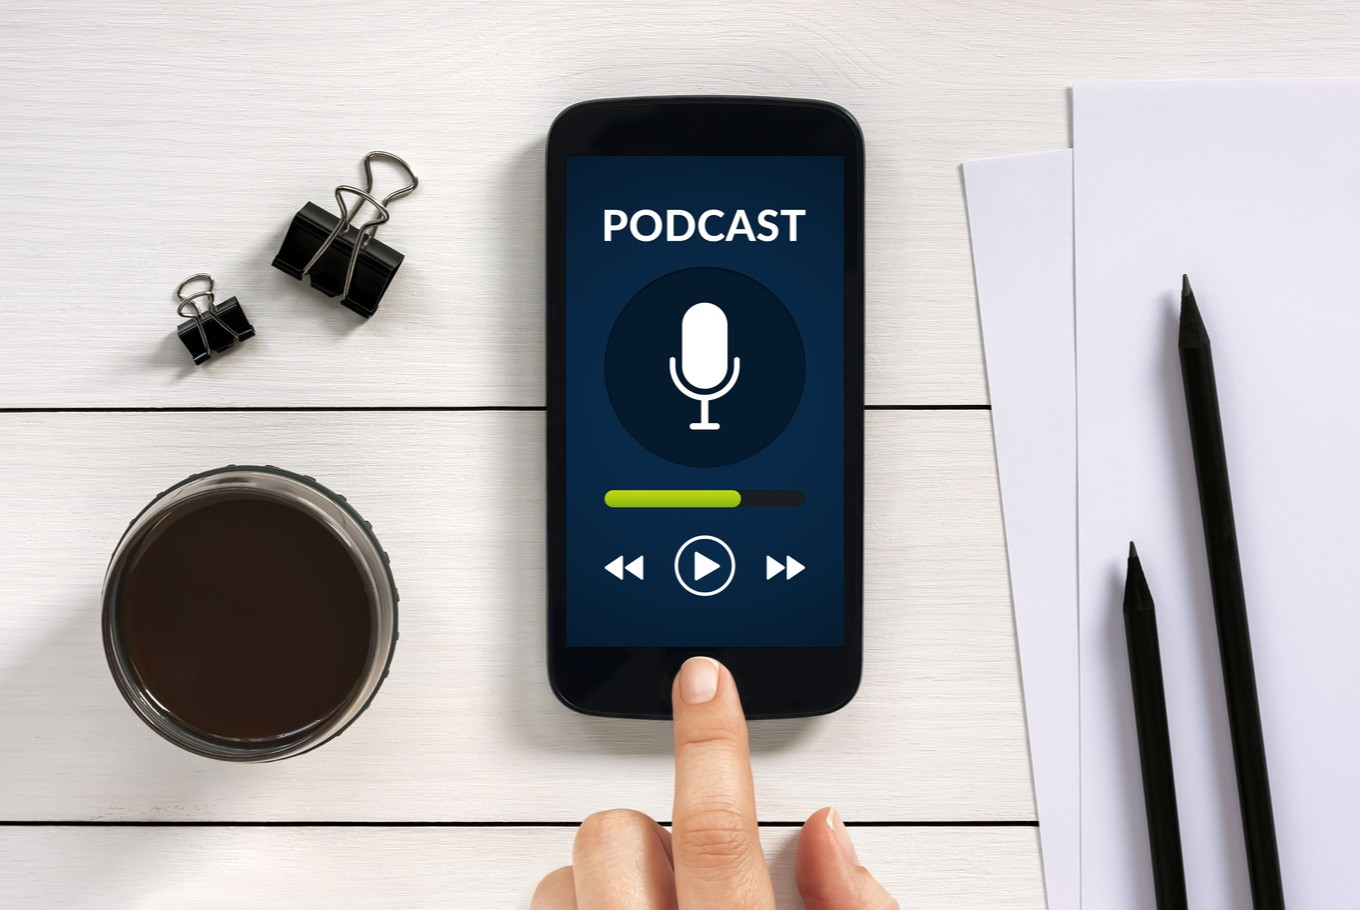 Five recommended podcasts for 'beginners'